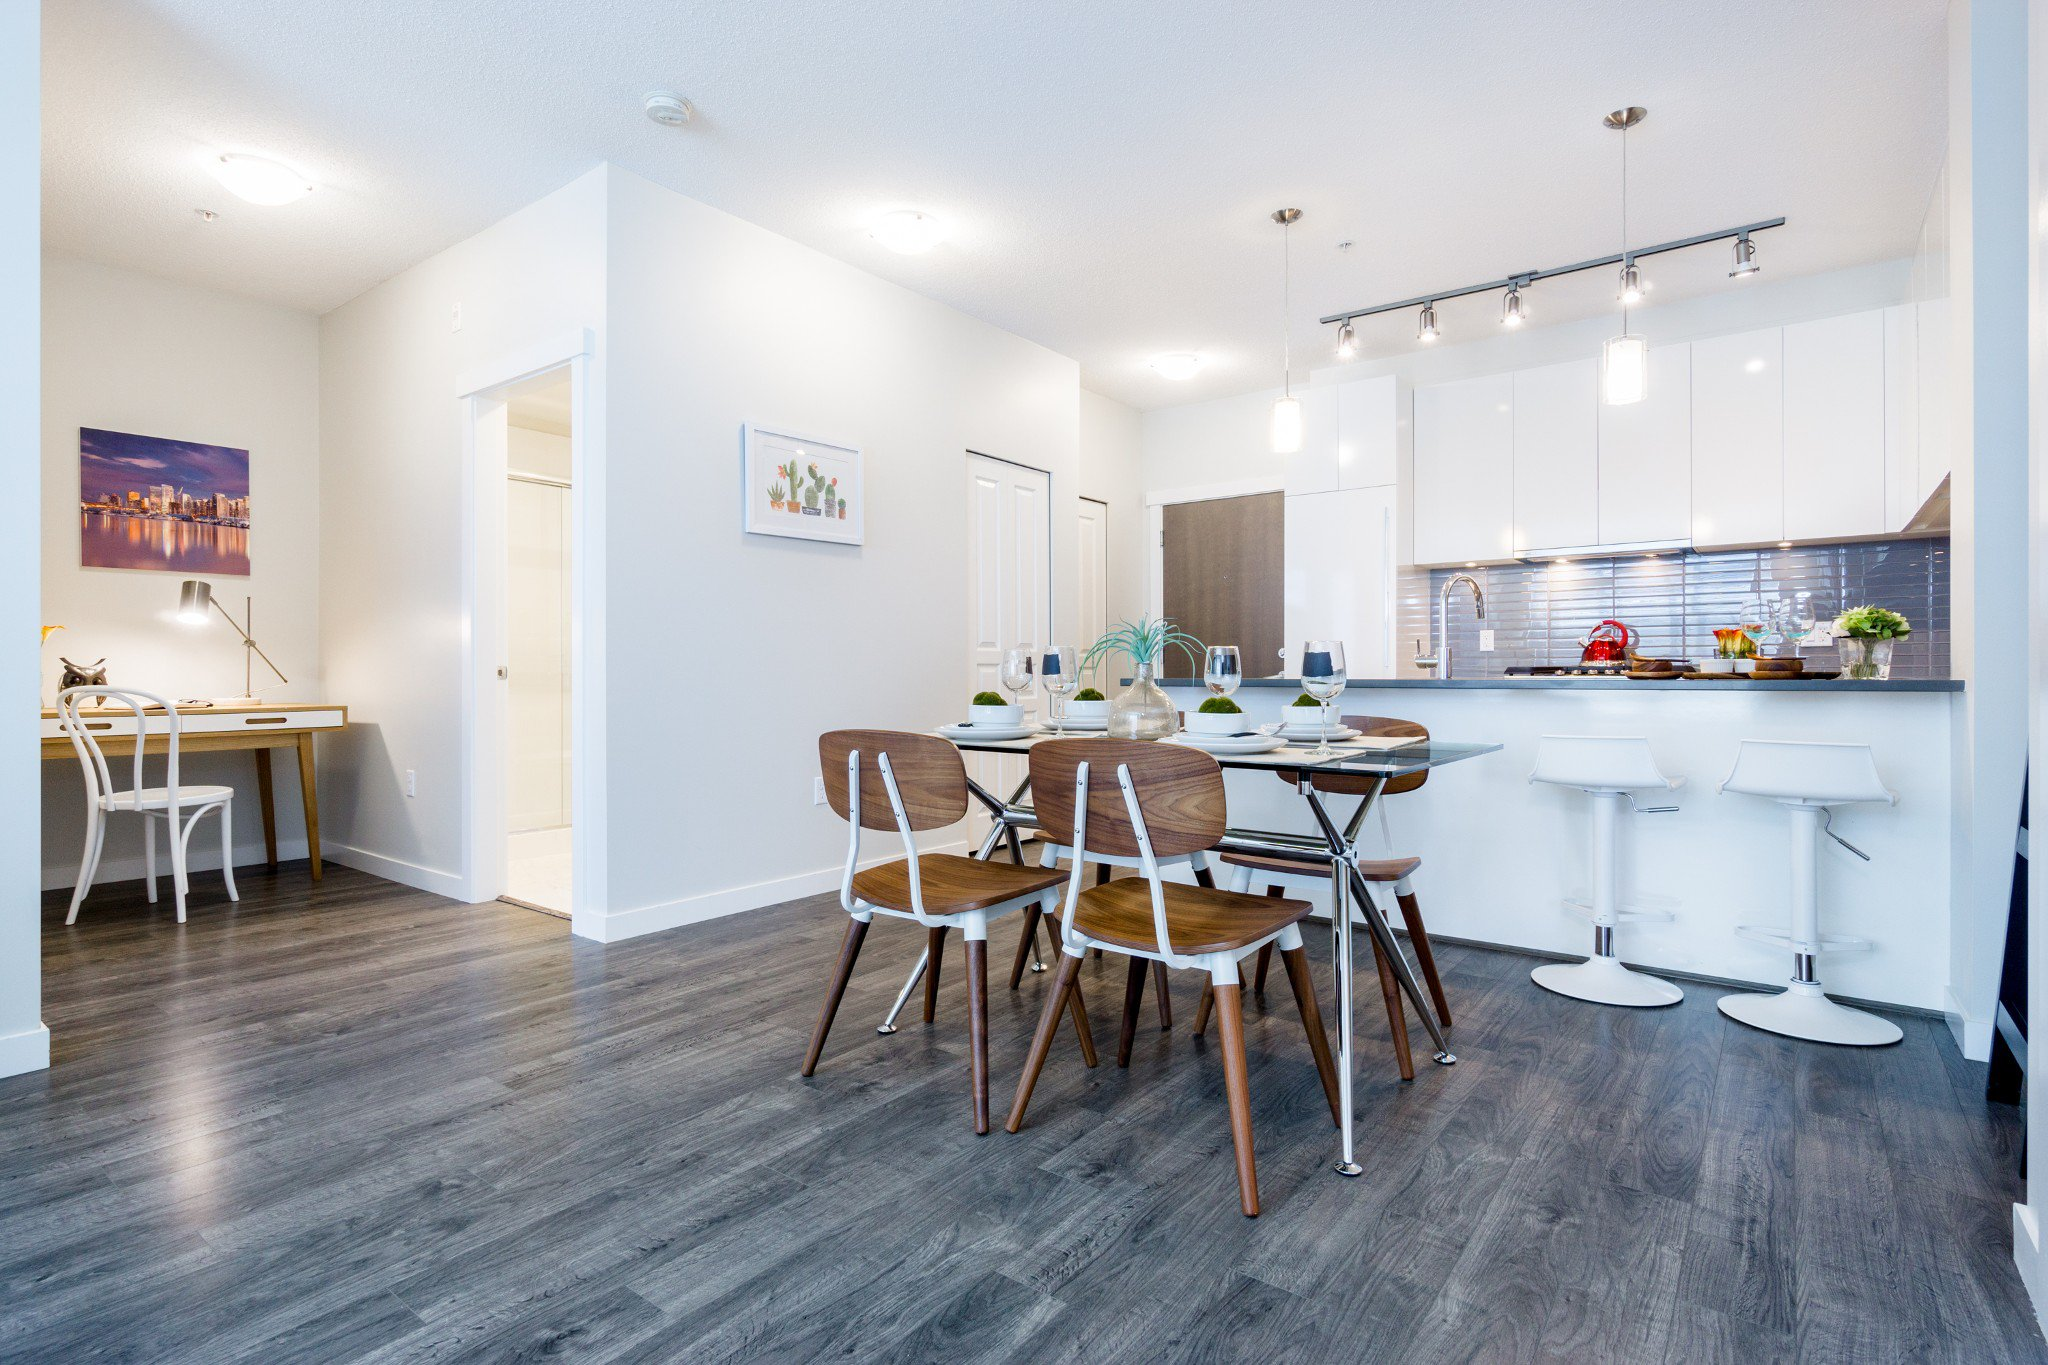 """Photo 13: Photos: 402 9311 ALEXANDRA Road in Richmond: West Cambie Condo for sale in """"ALEXANDRA COURT"""" : MLS®# R2266613"""